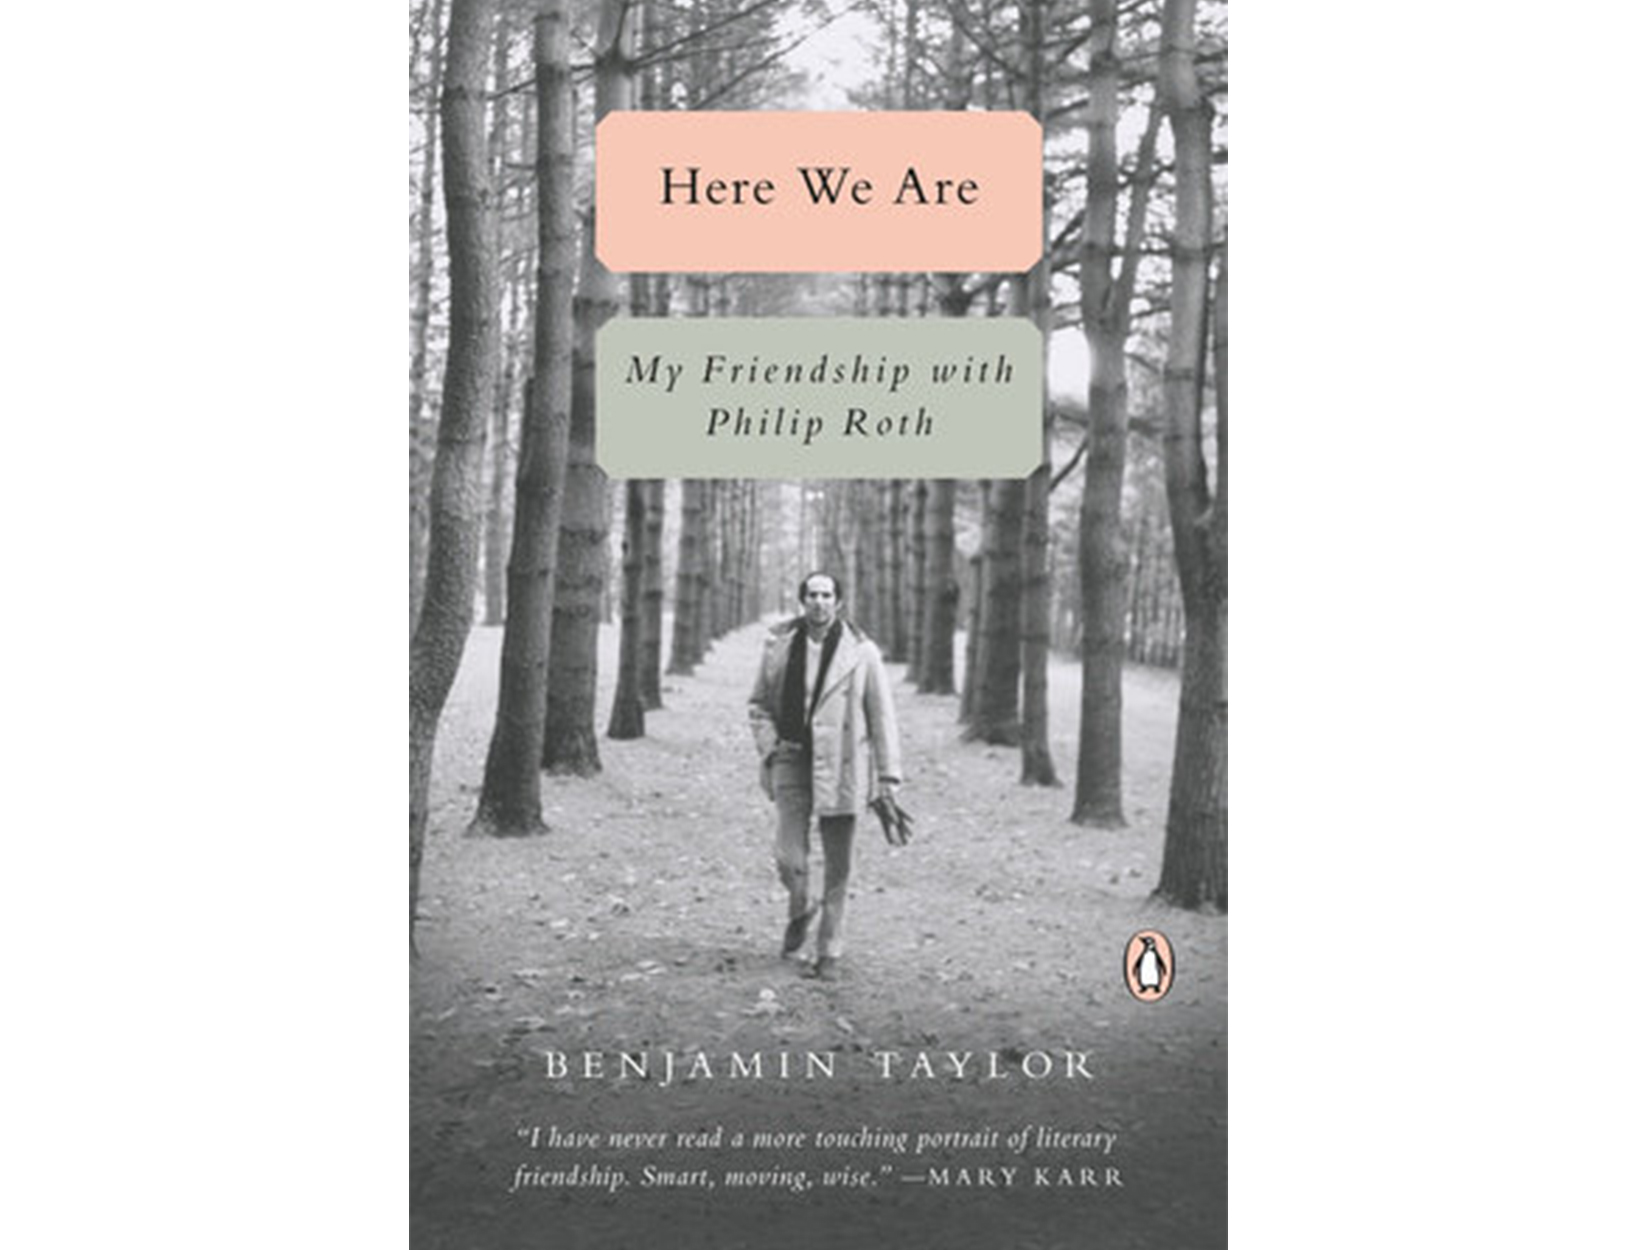 <em>Here We Are</em> by Benjamin Taylor